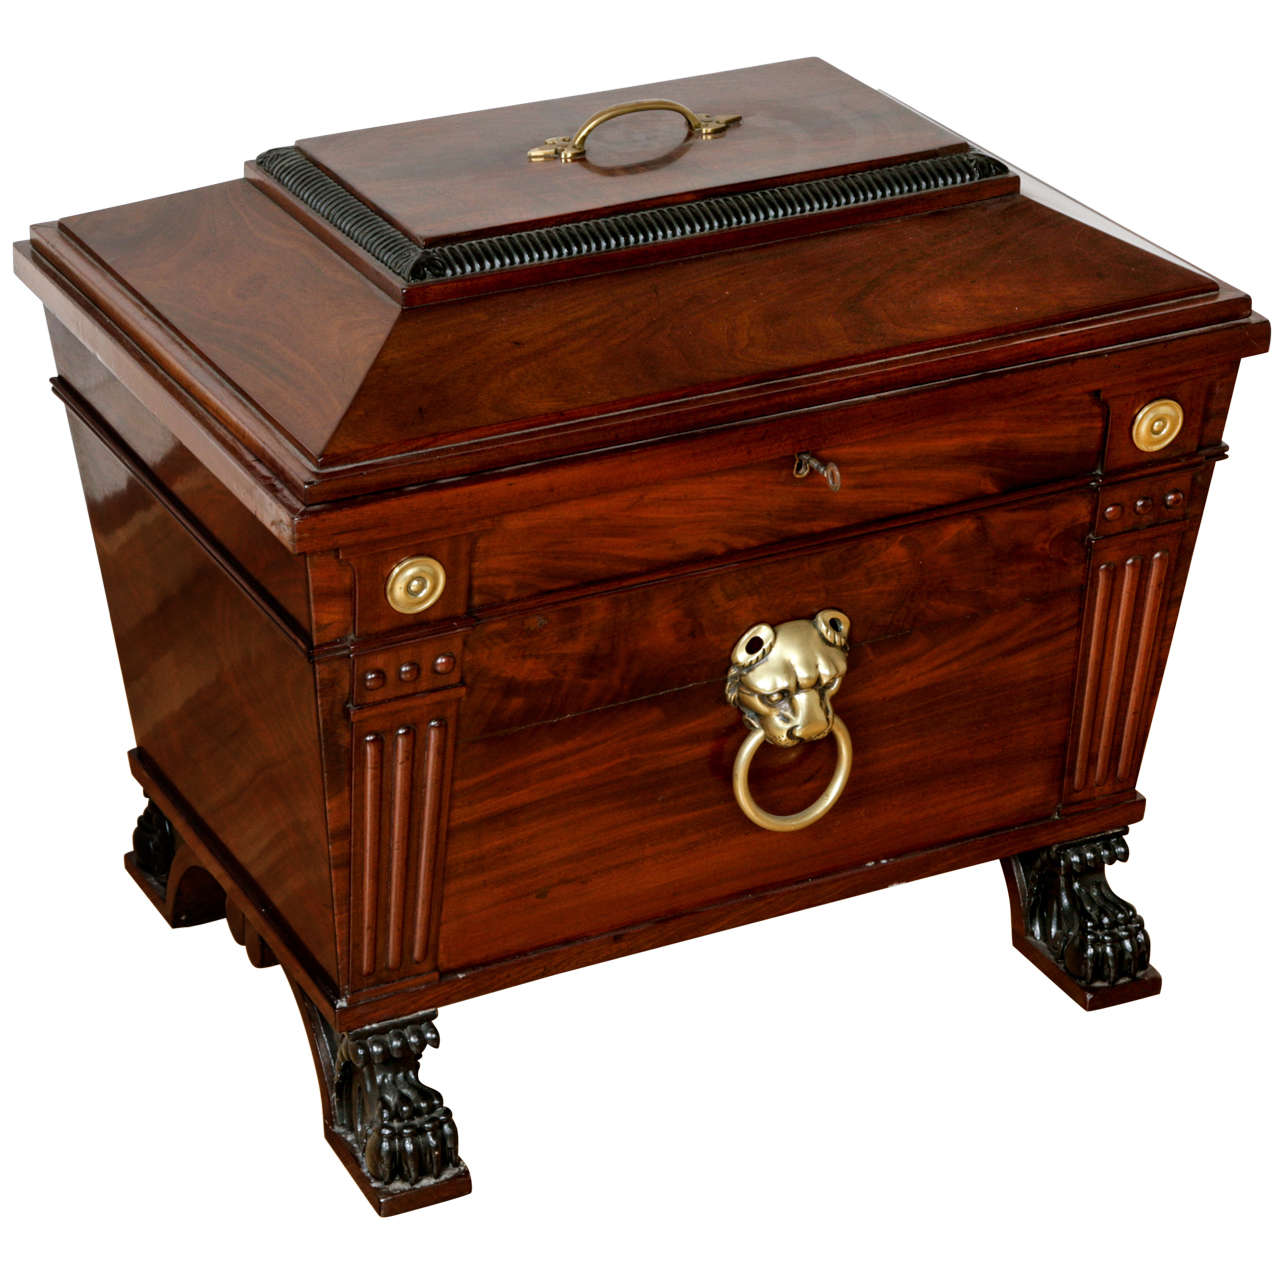 George IV Style Brass-Mounted Mahogany Wine Cooler For Sale